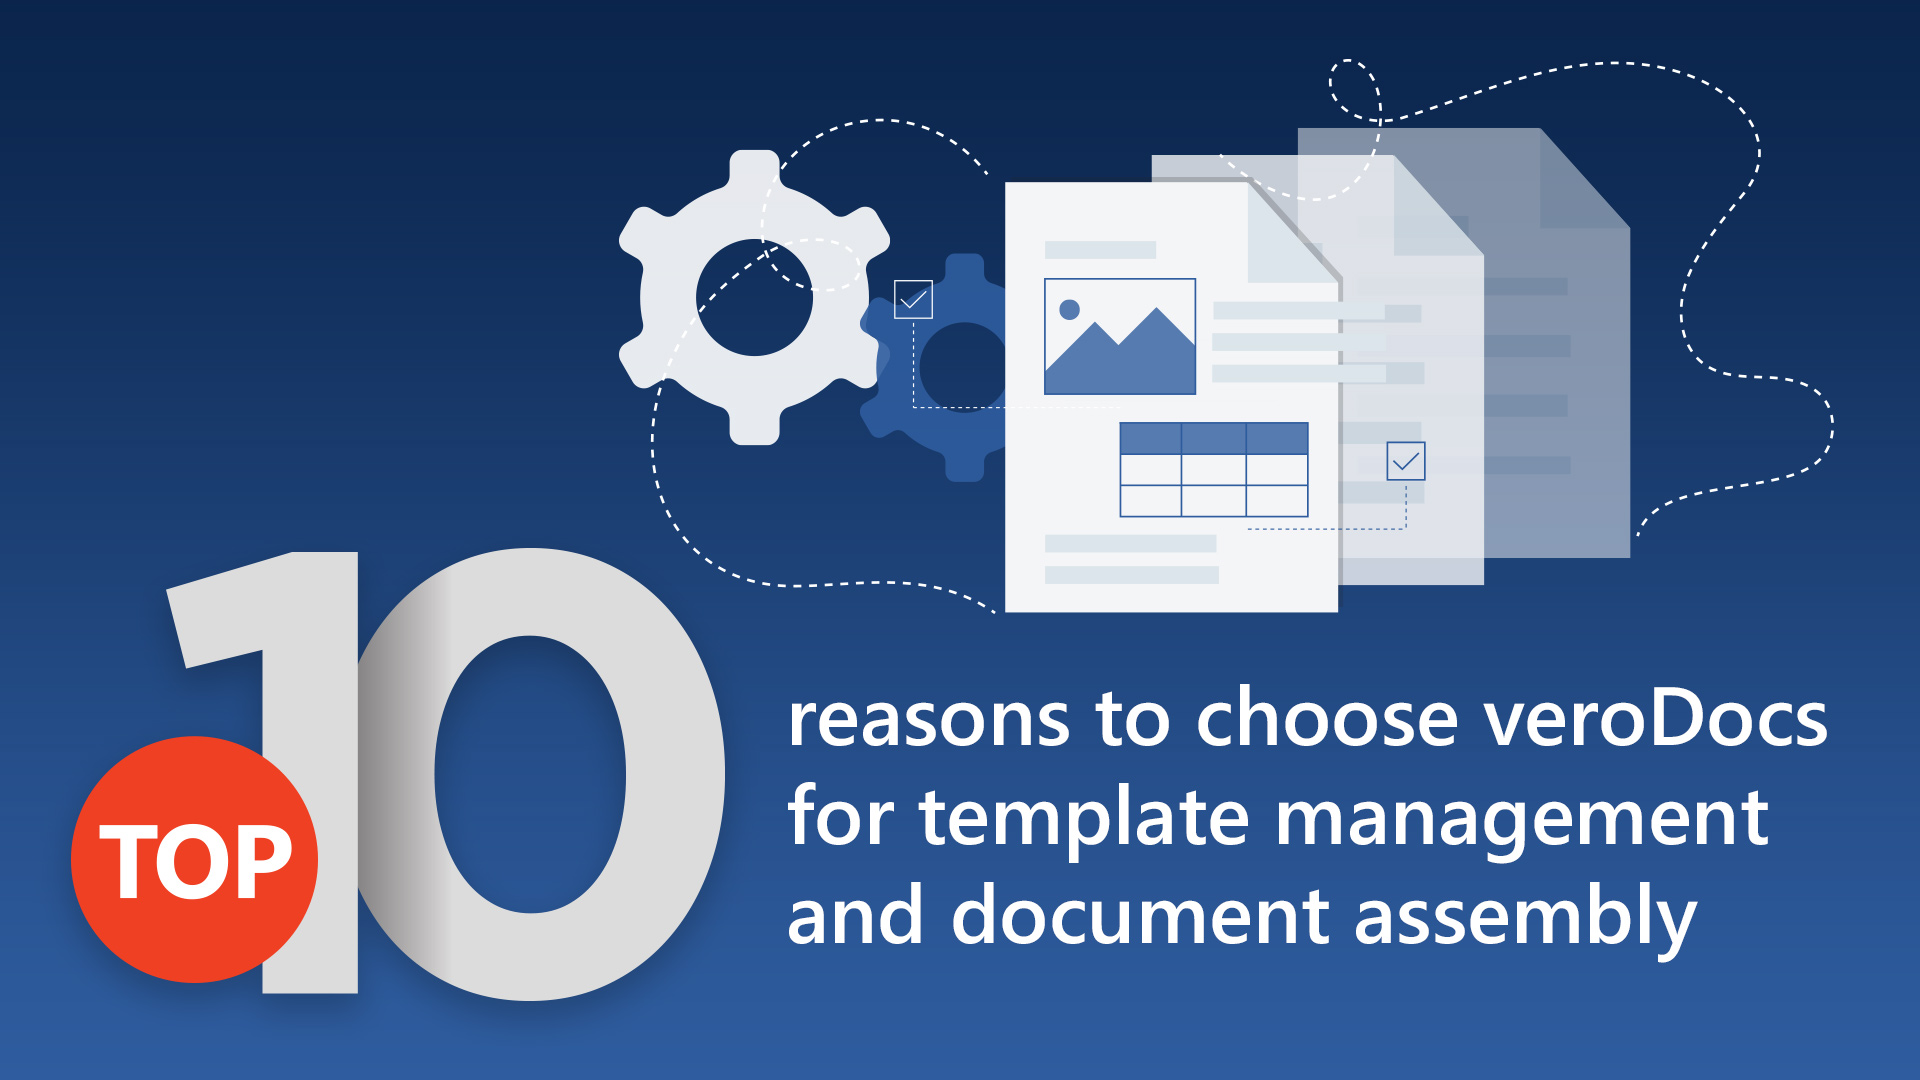 10 reasons to choose veroDocs for template management and document assembly